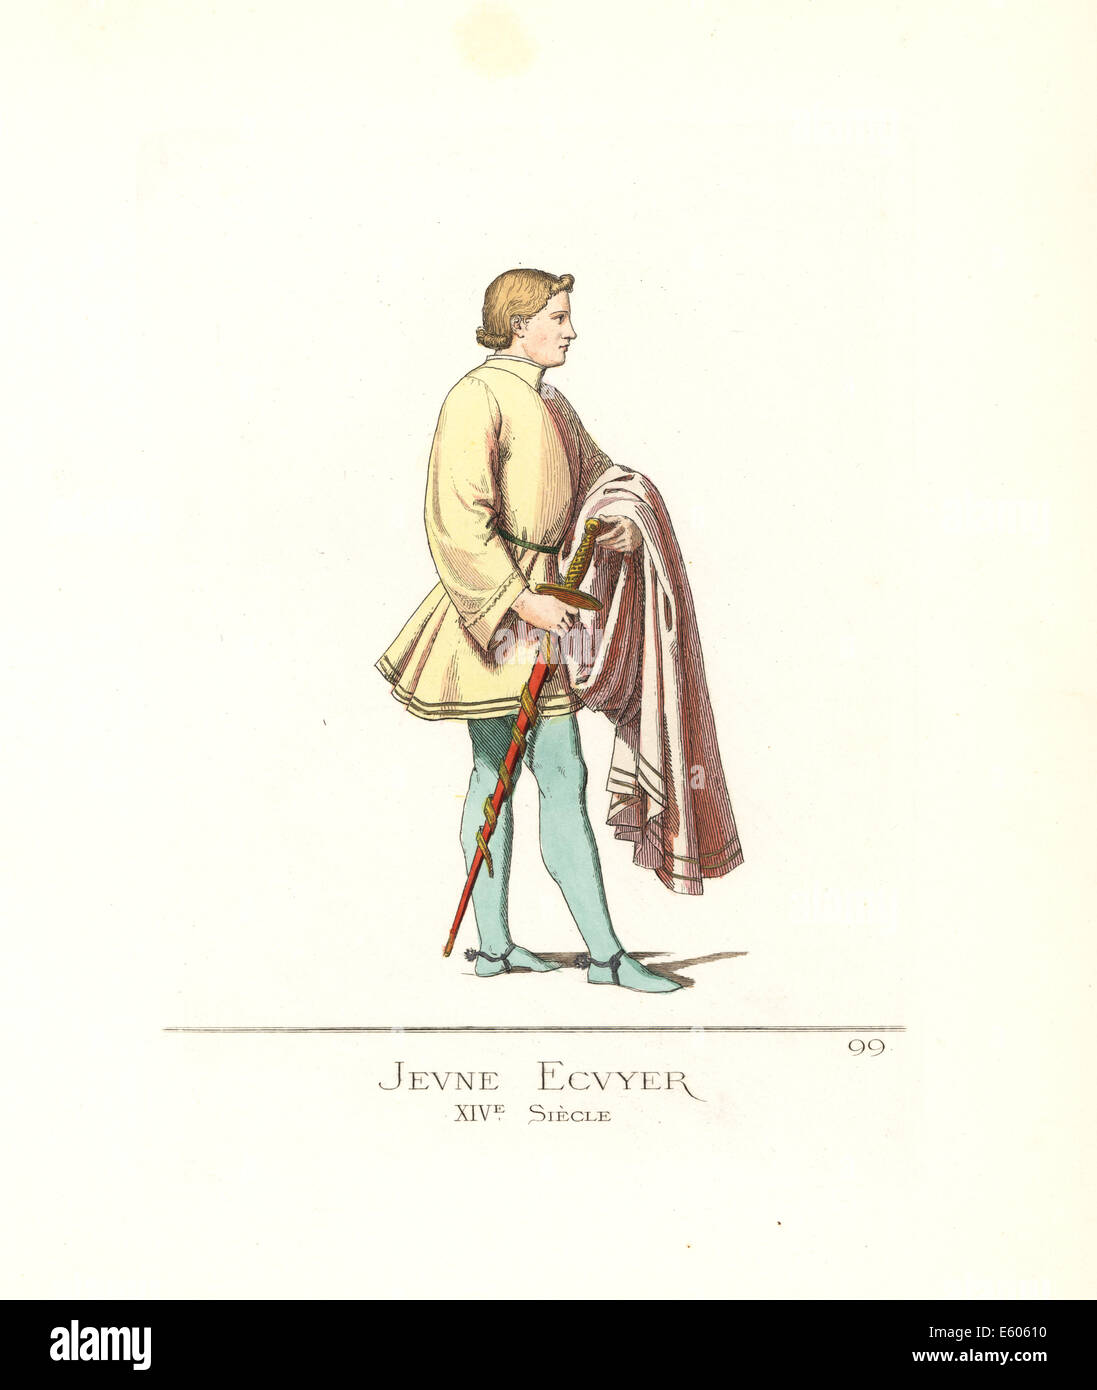 Costume of a young squire, 14th century. - Stock Image